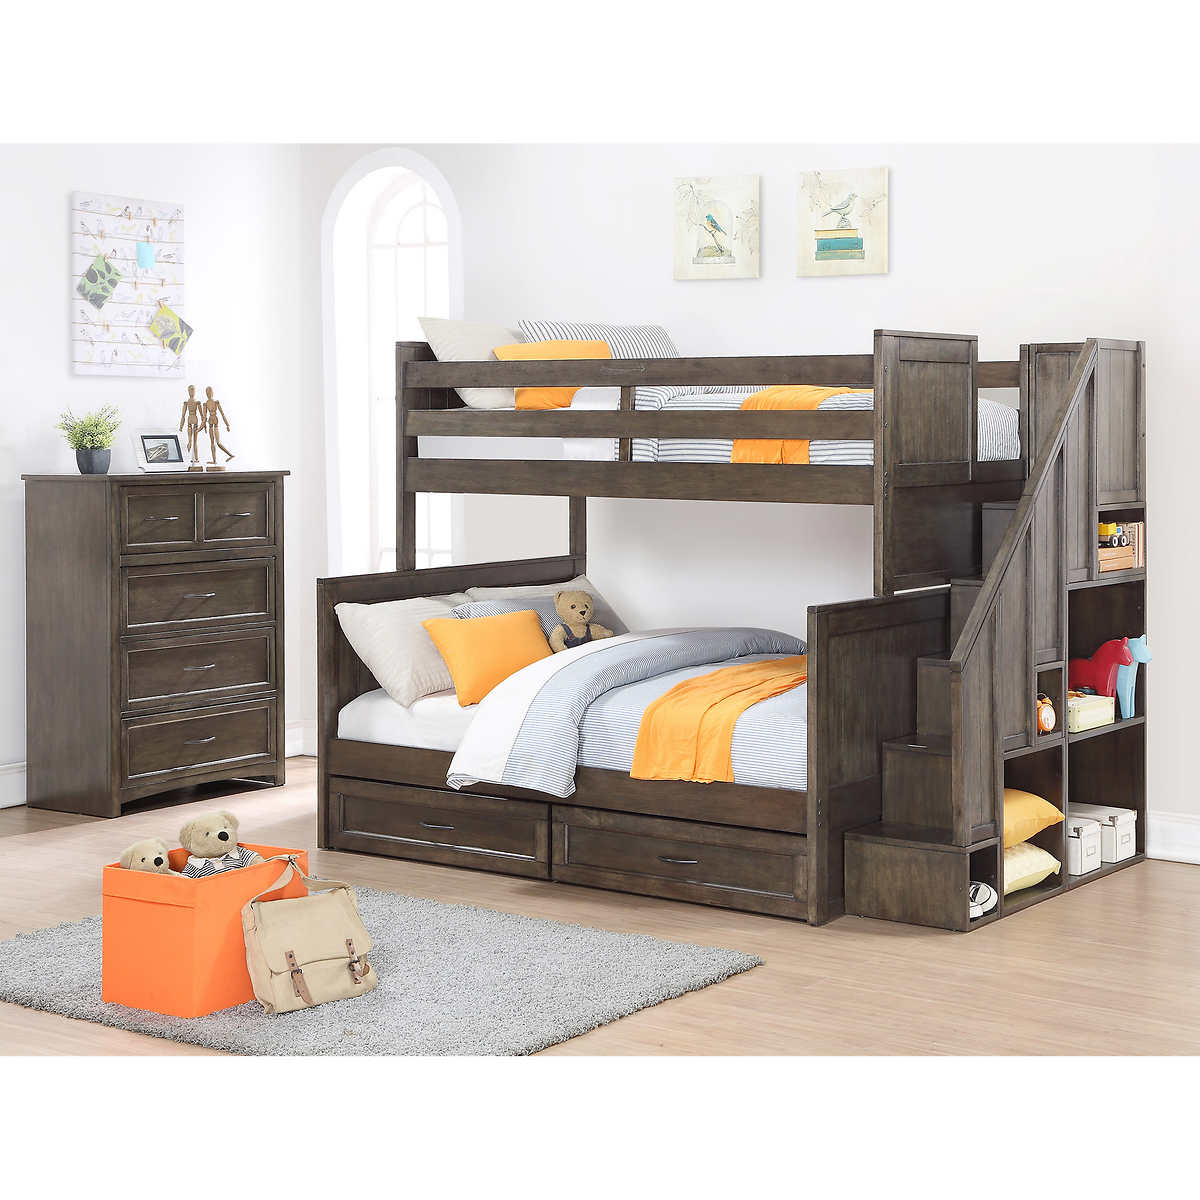 Keystone Bunk Beds